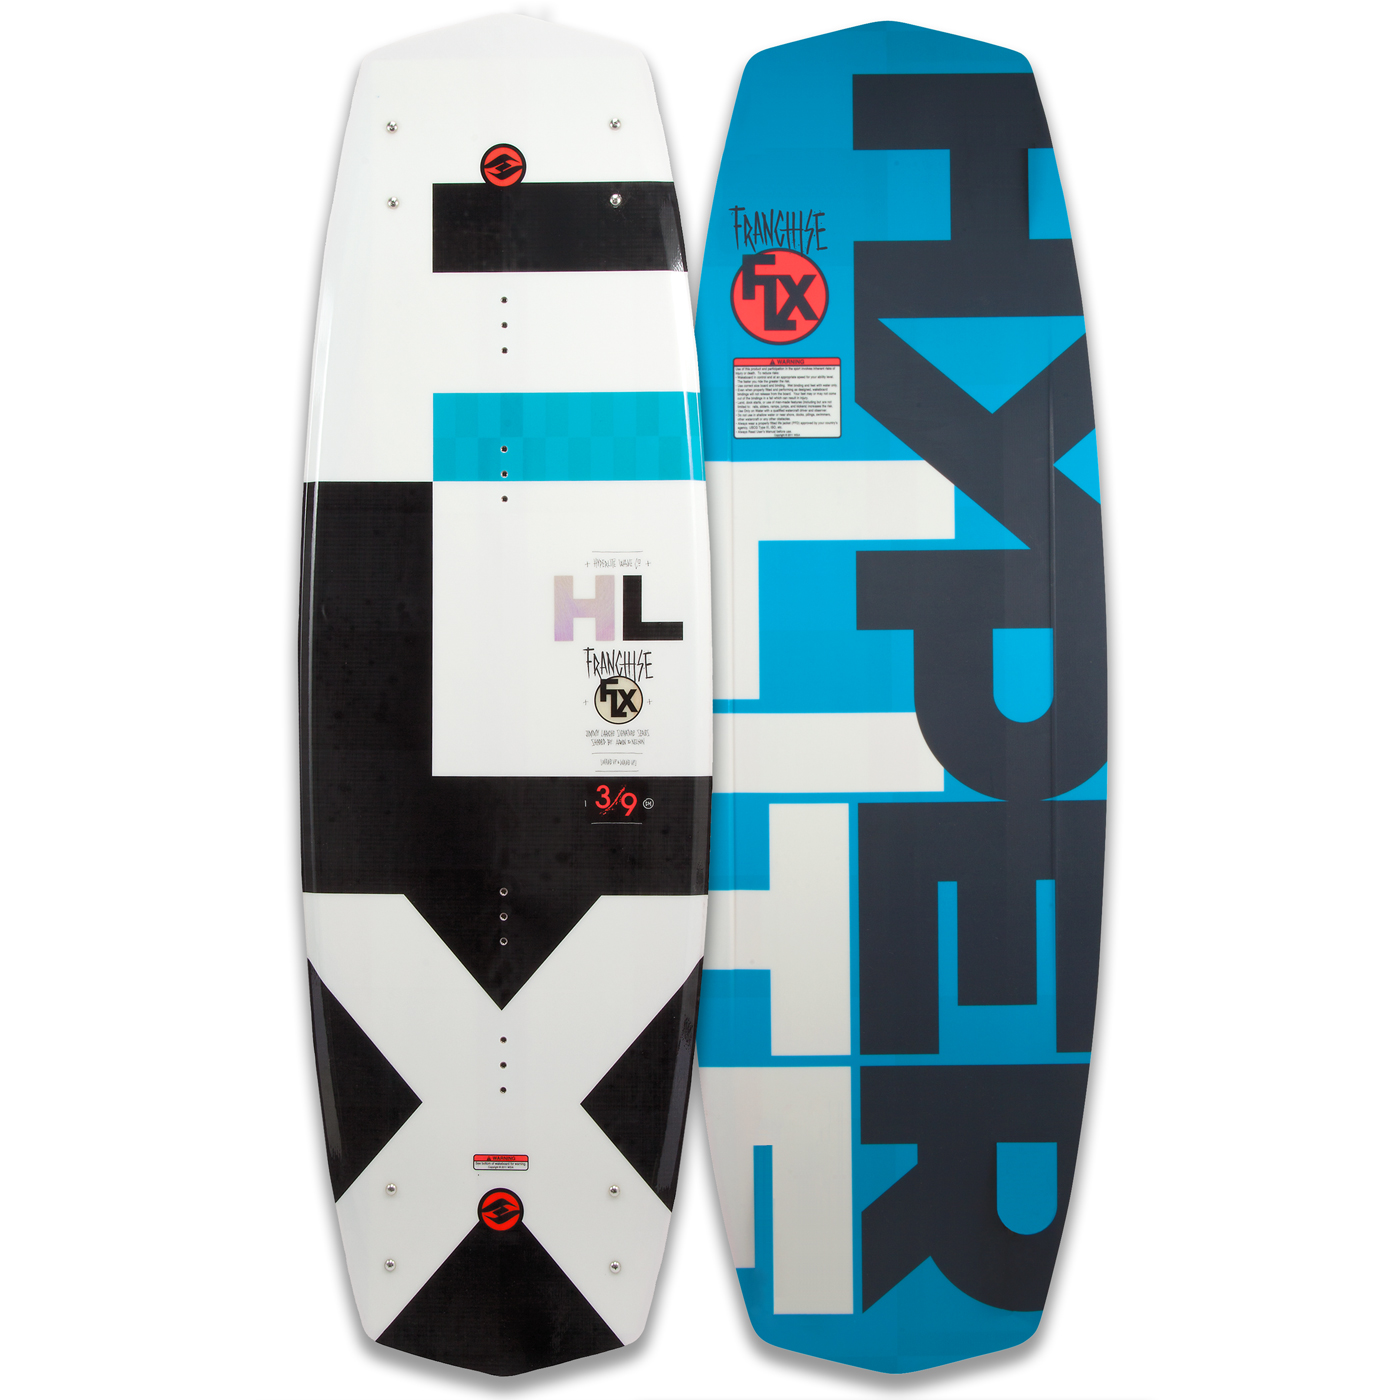 FRANCHISE FLX 128 JR. WAKEBOARD HYPERLITE 2016